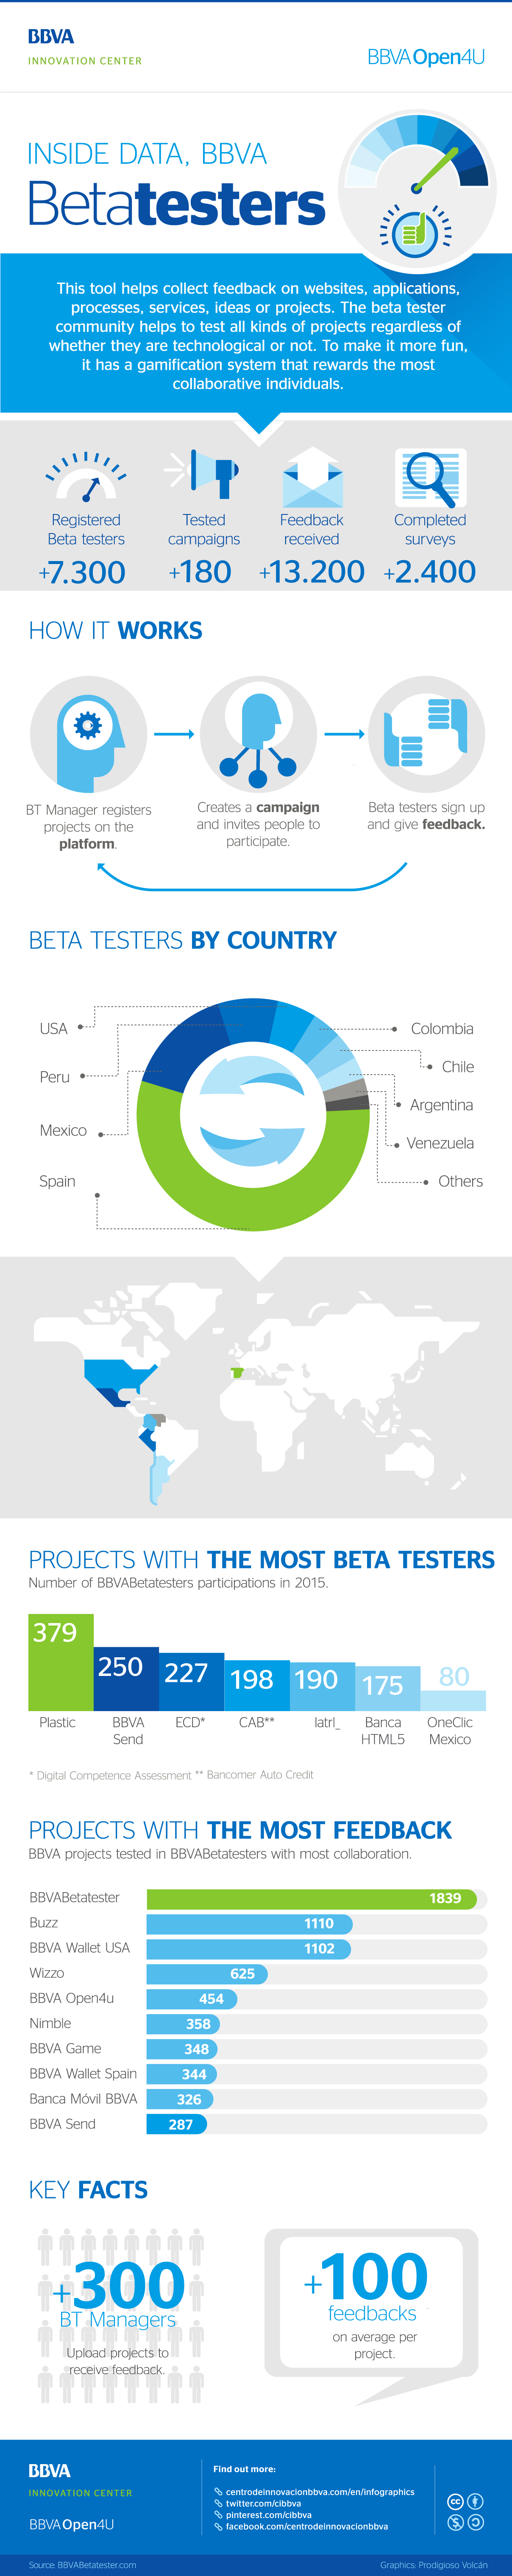 Infographic: Inside BBVABetatesters